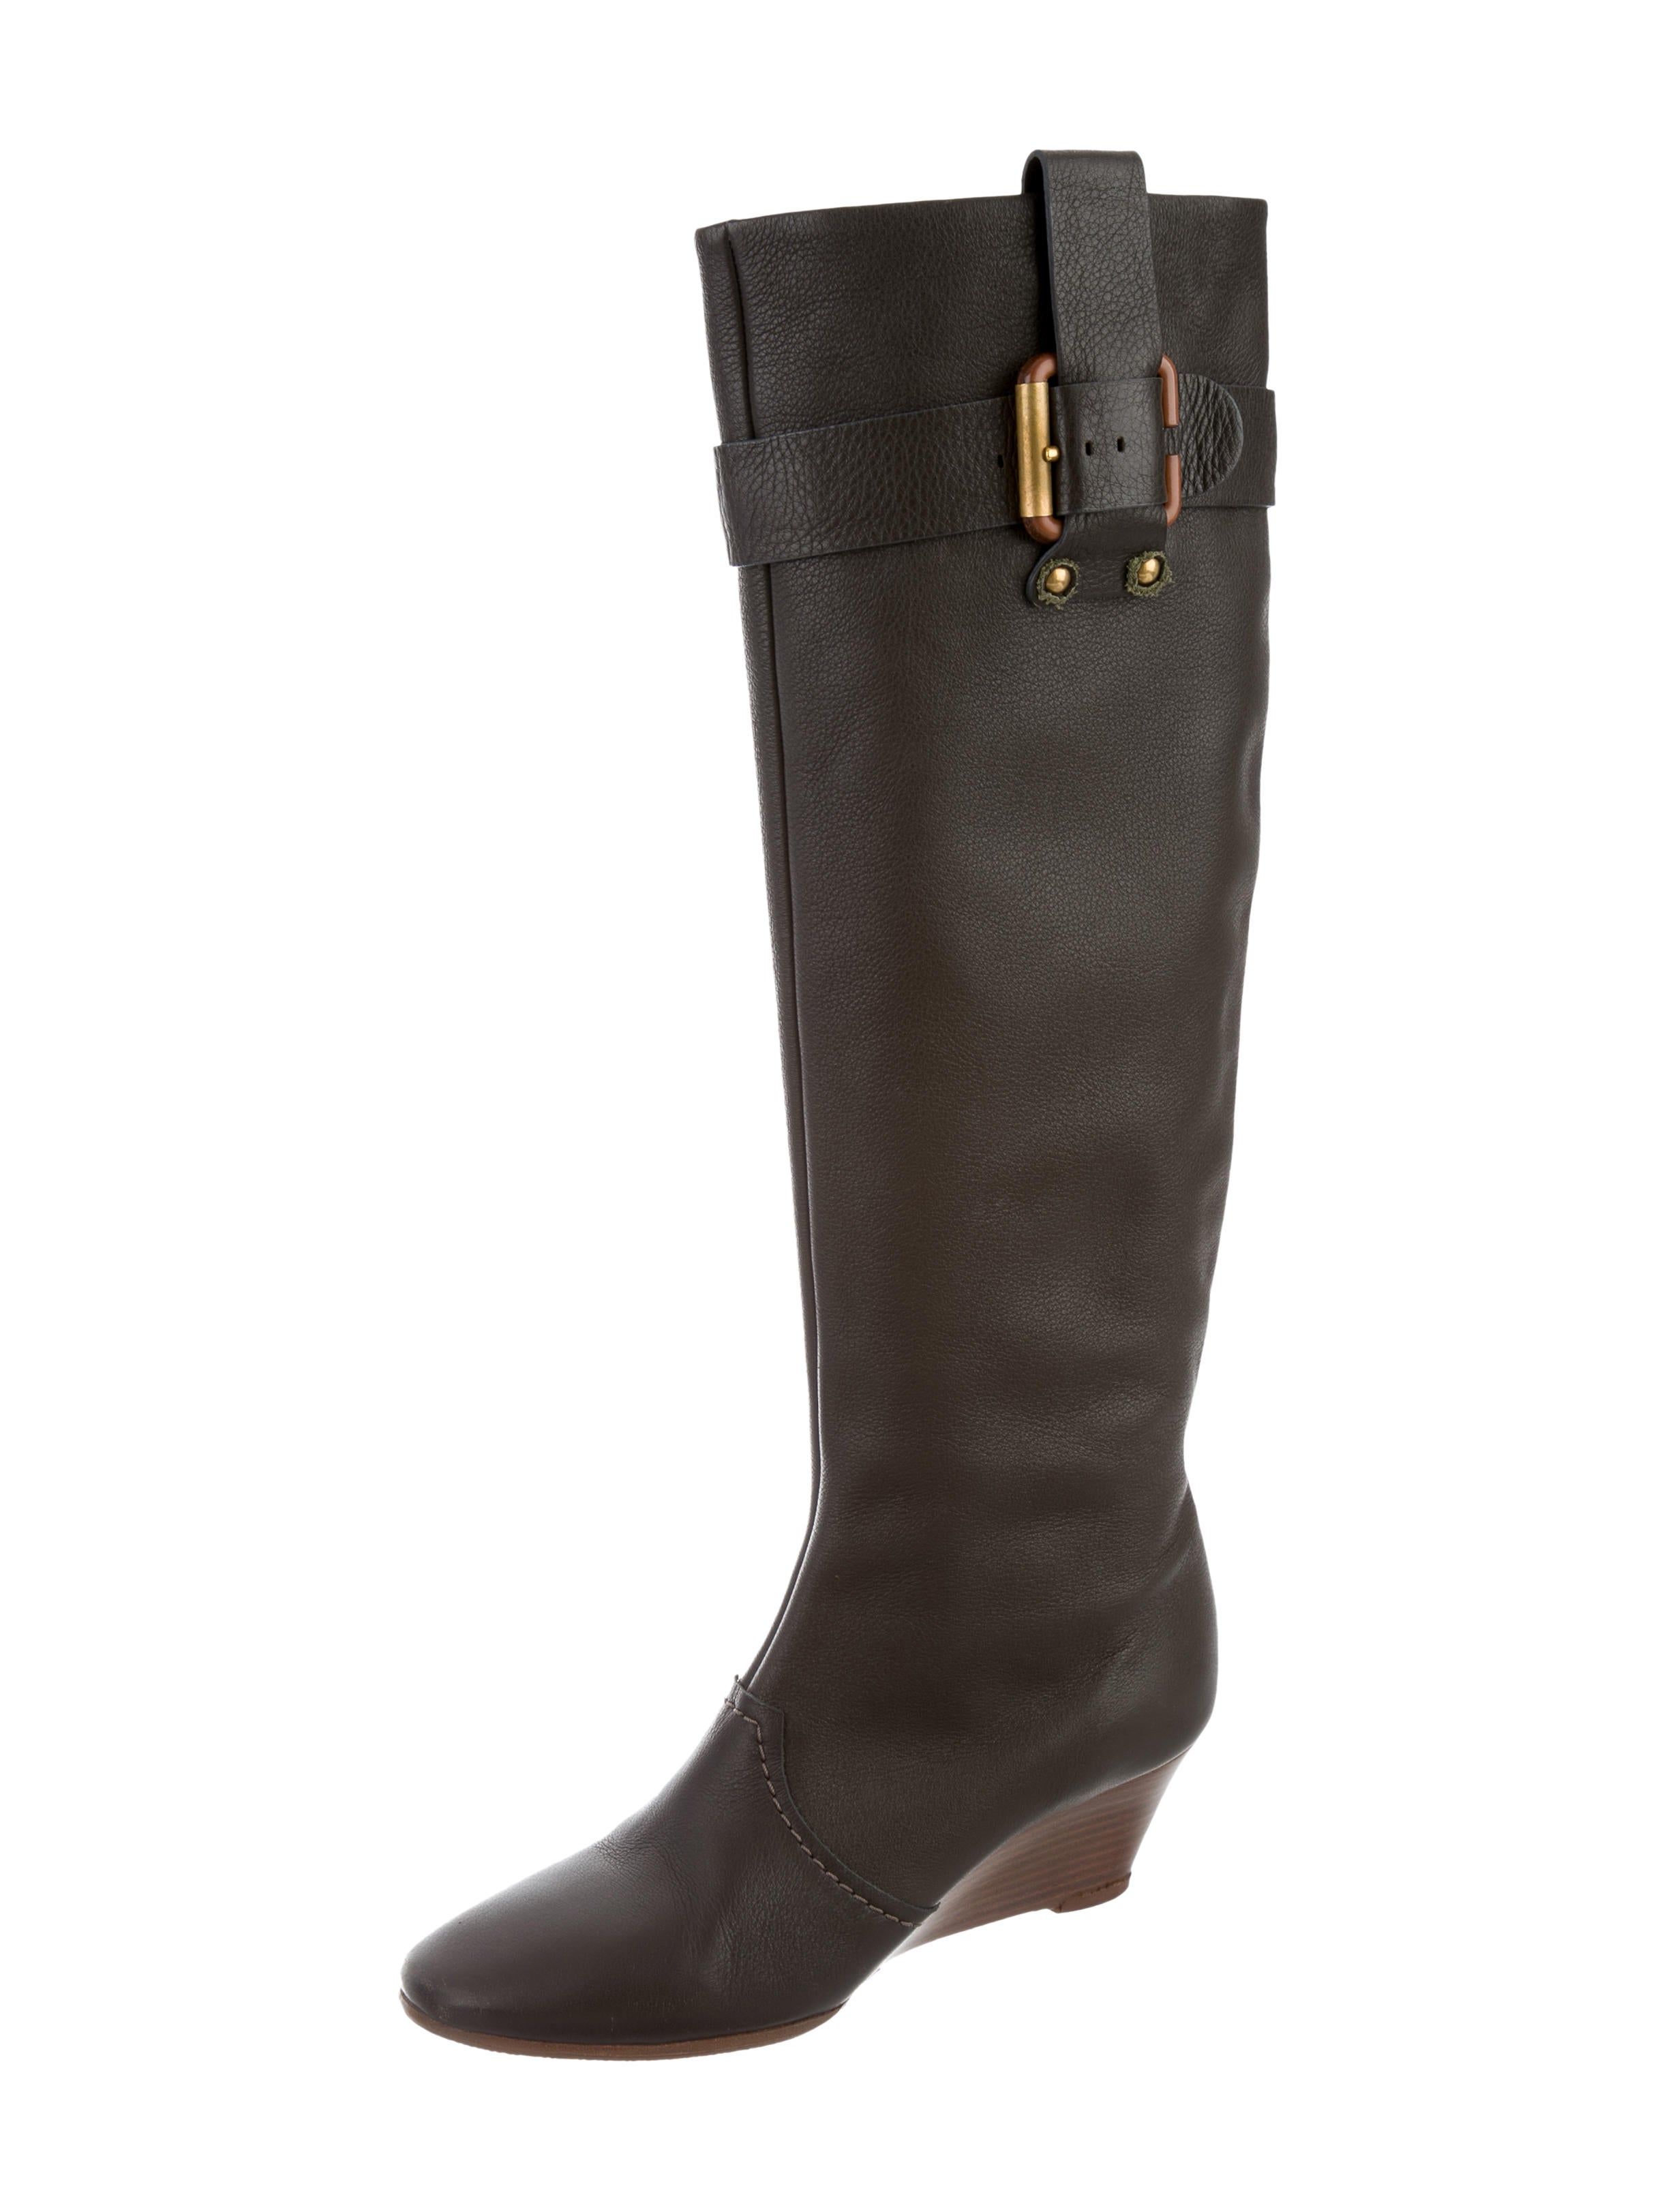 chlo 233 leather wedge boots shoes chl52700 the realreal